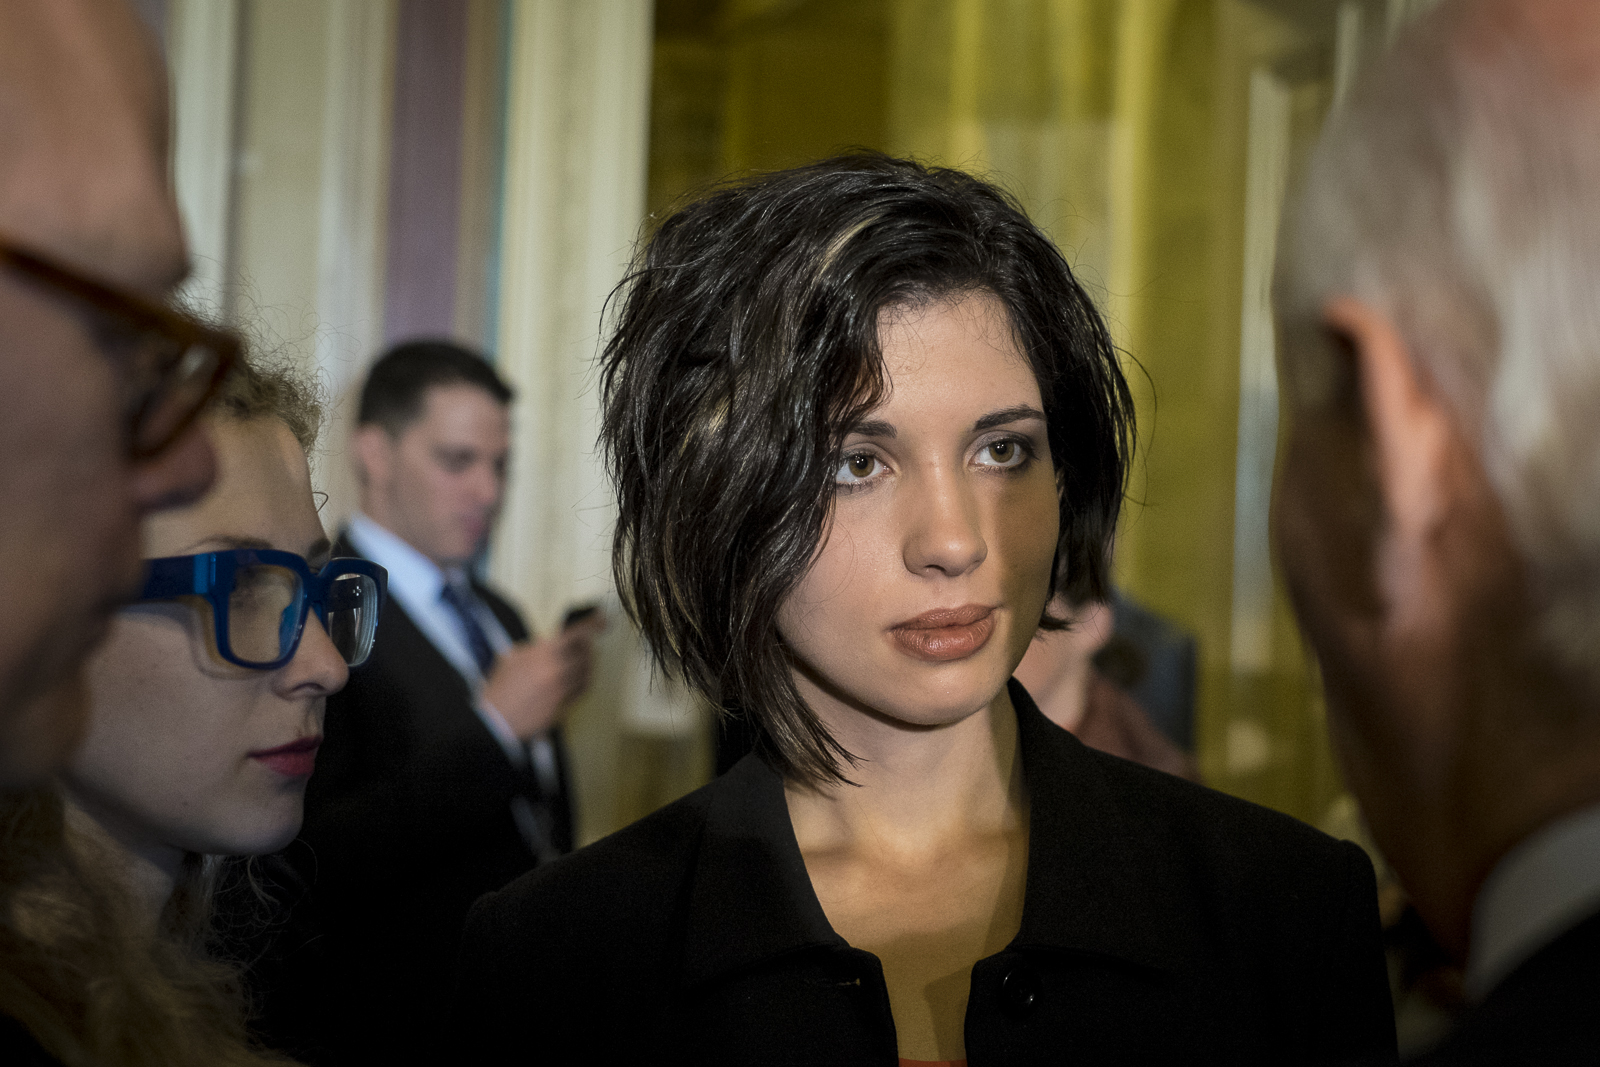 Maria Alyokhina (L) and Nadya Tolokonnikova, members of the Russian feminist punk rock protest group, Pussy Riot, confer with  Senator Ben Cardin (D-MD) following a press conference on Capitol Hill in Washington, D.C., to discuss the state of human rights in Russia.